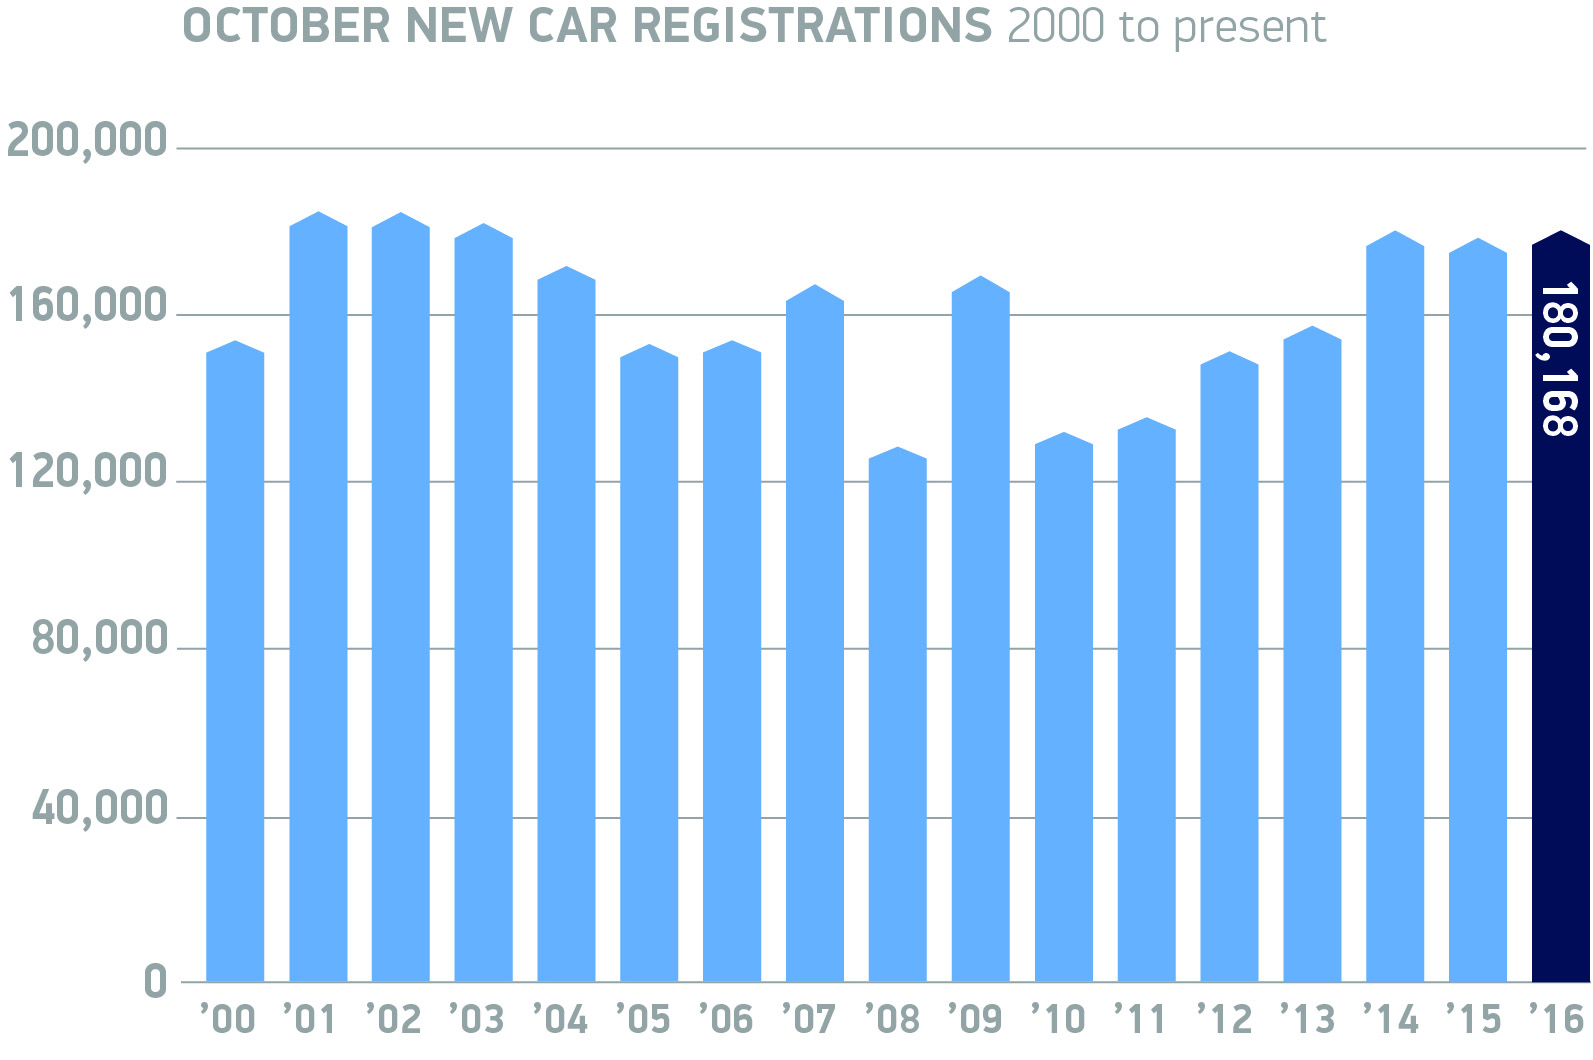 October new car registrations 2000 to present chart